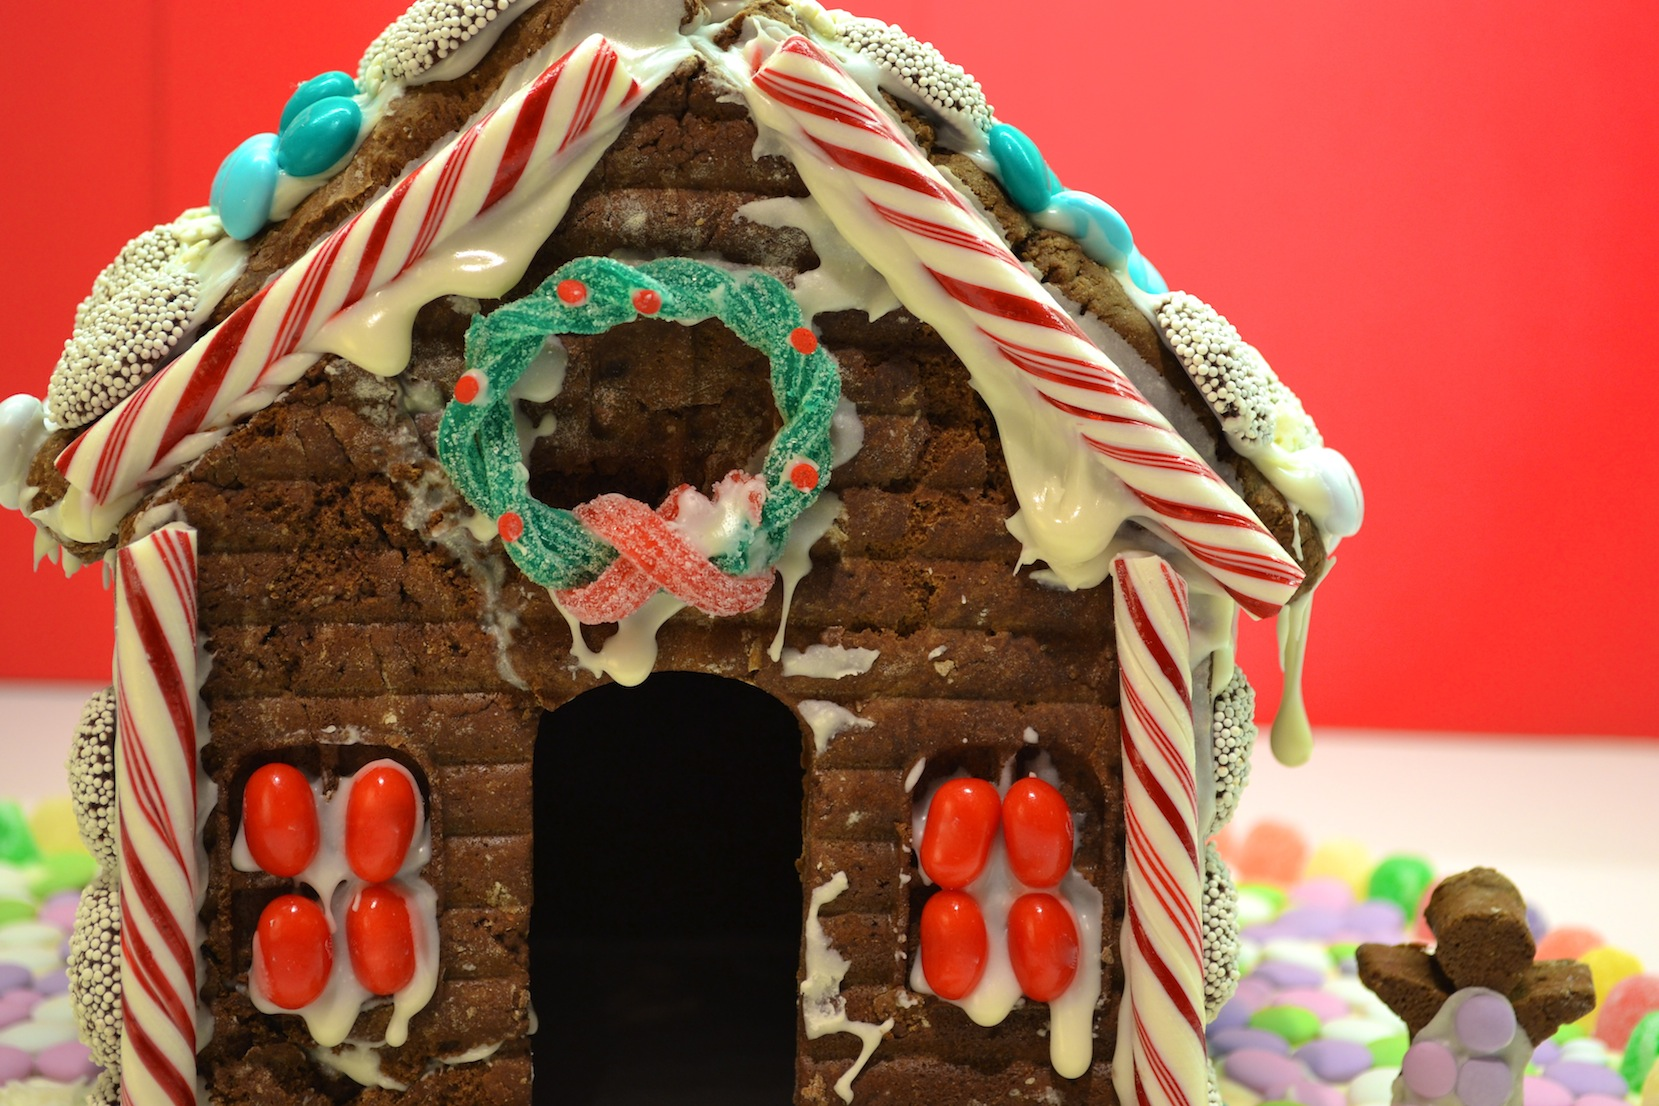 Gingerbread house decorating icing